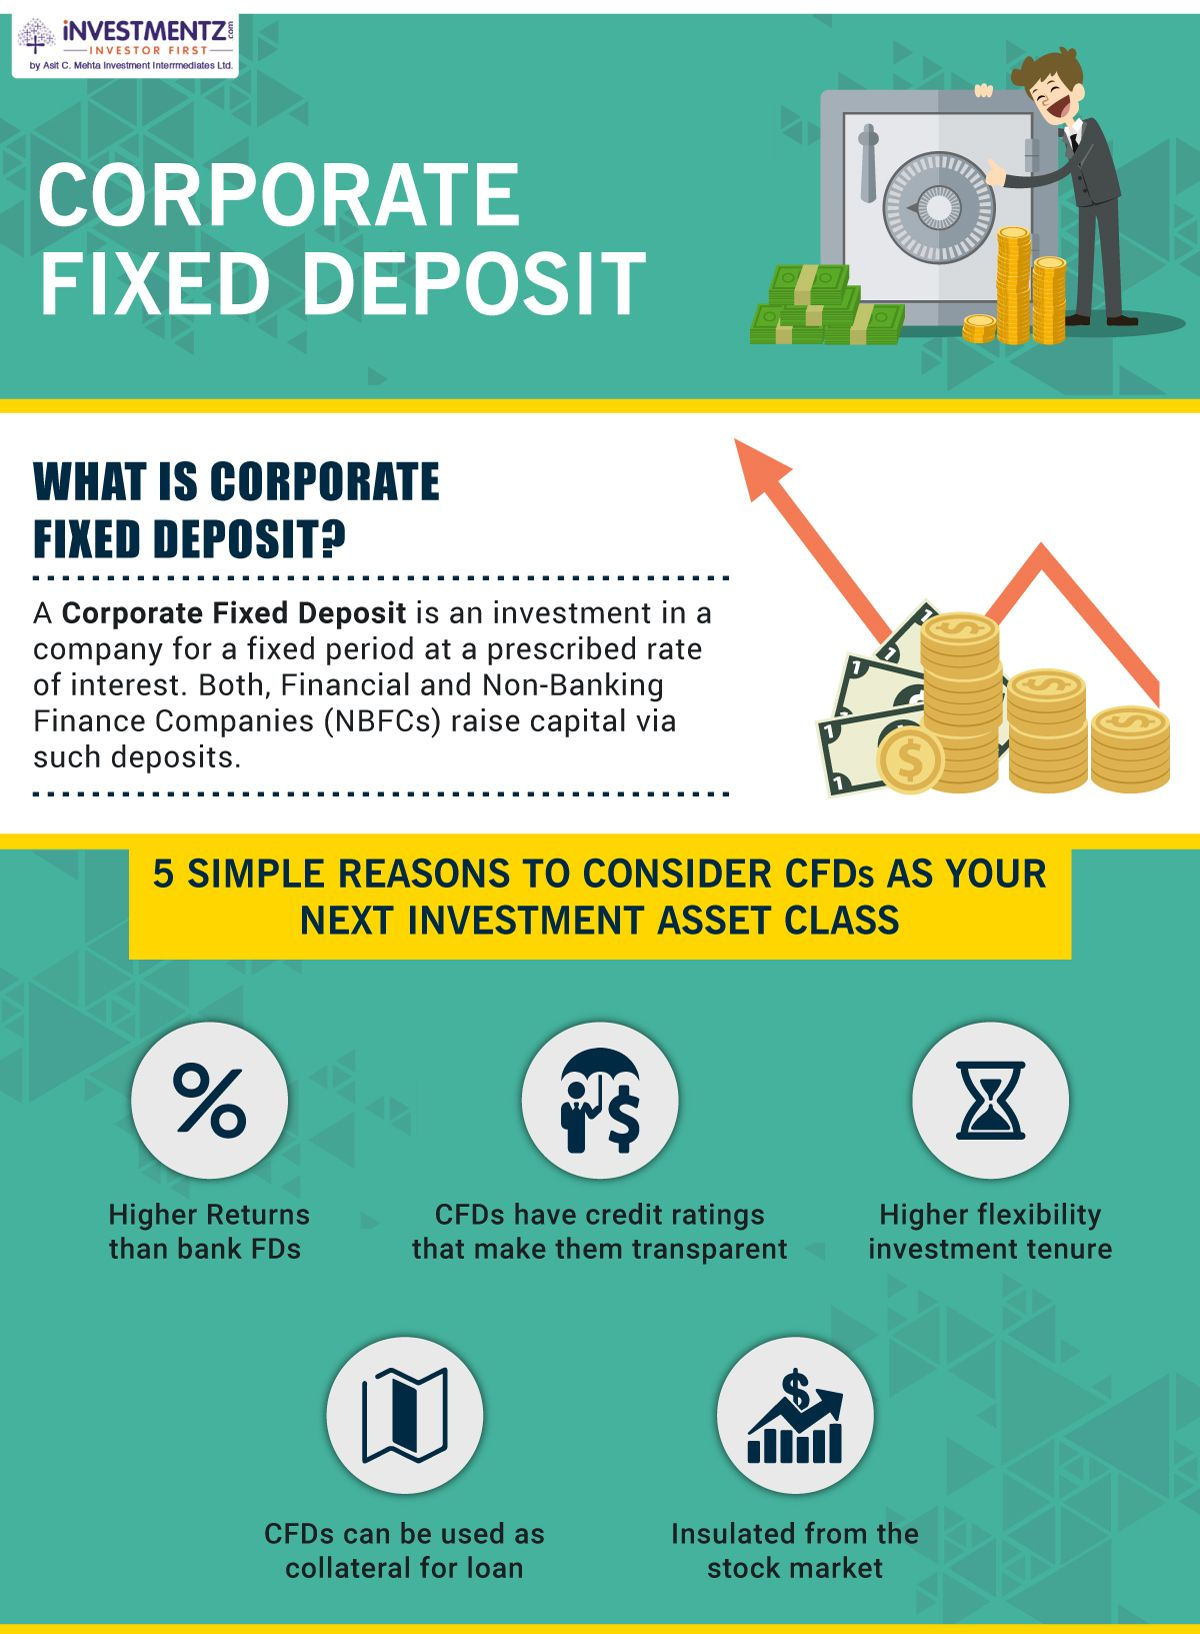 Corporate Fixed Deposits Cfds Are An Investment Asset Class That Is Fast Gaining Popularity In The Past Few Quarters Primarily Owing To Investing Online Stock Trading Online Share Trading